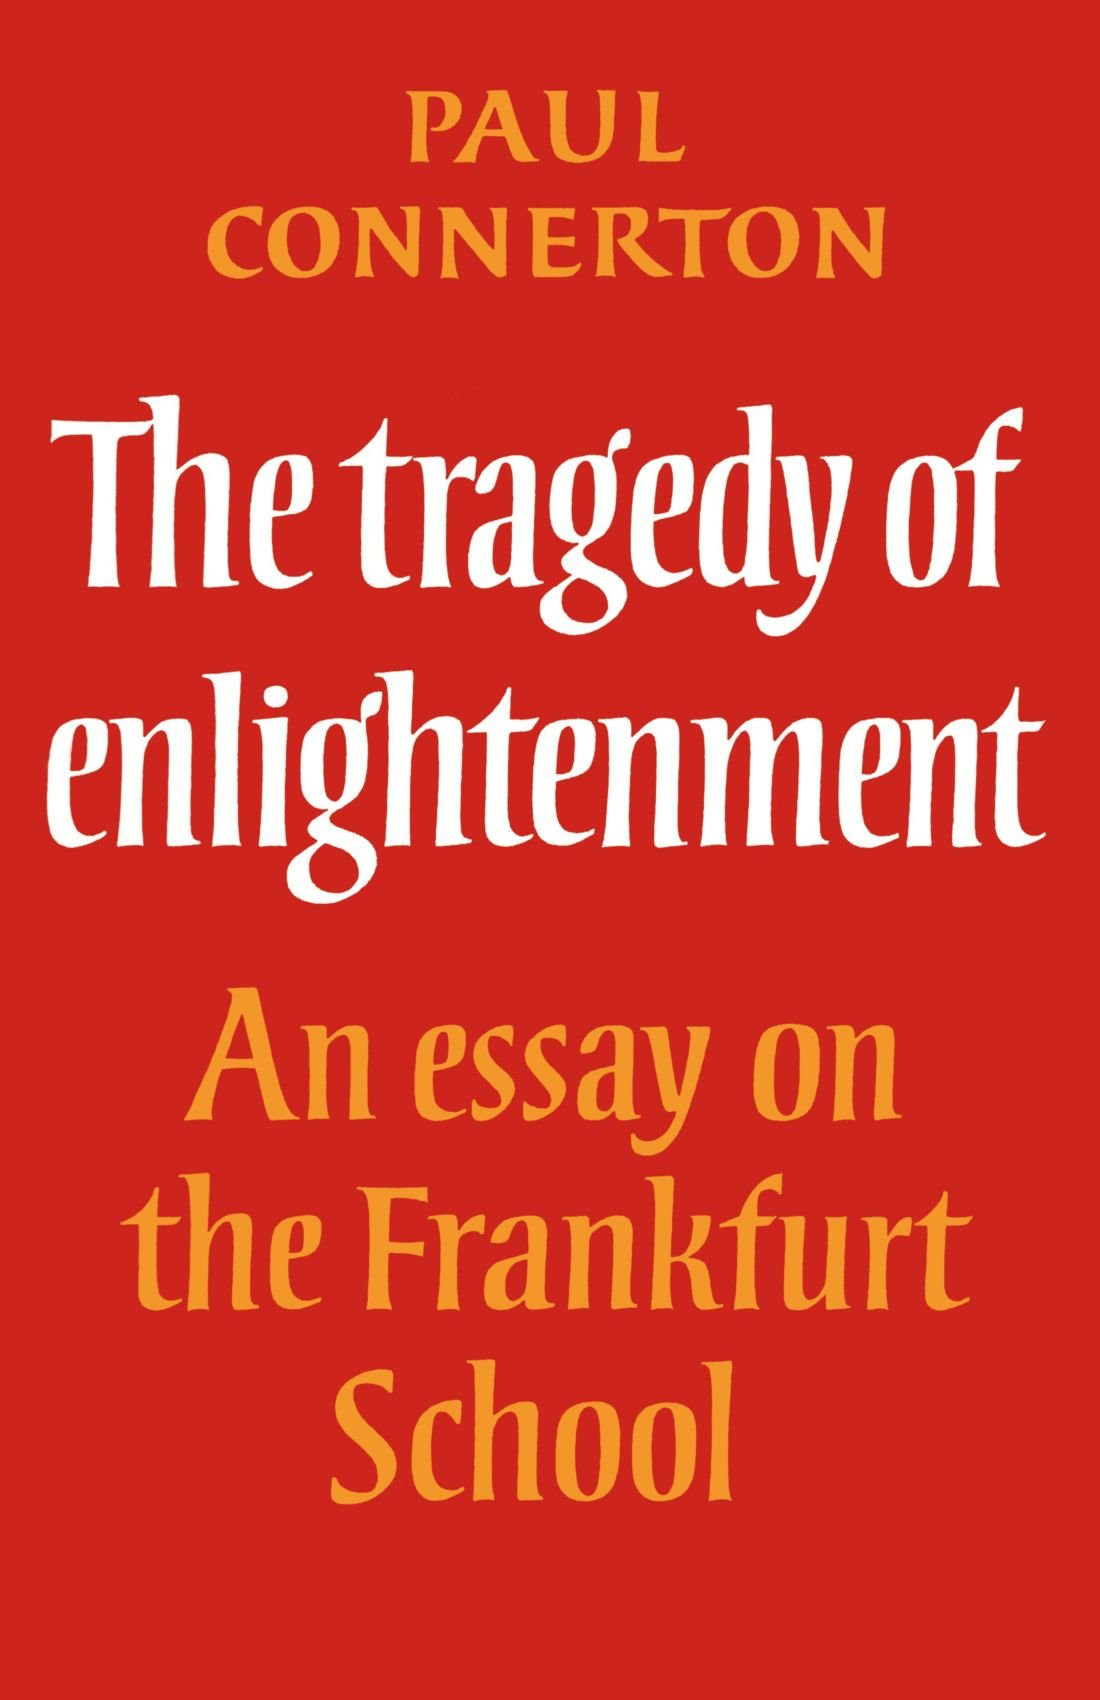 The Tragedy Of Enlightenment An Essay On The Frankfurt School  The Tragedy Of Enlightenment An Essay On The Frankfurt School Cambridge  Studies In The History And Theory Of Politics Paul Connerton    Mahatma Gandhi Essay In English also Sample High School Admission Essays  Science Fiction Essay